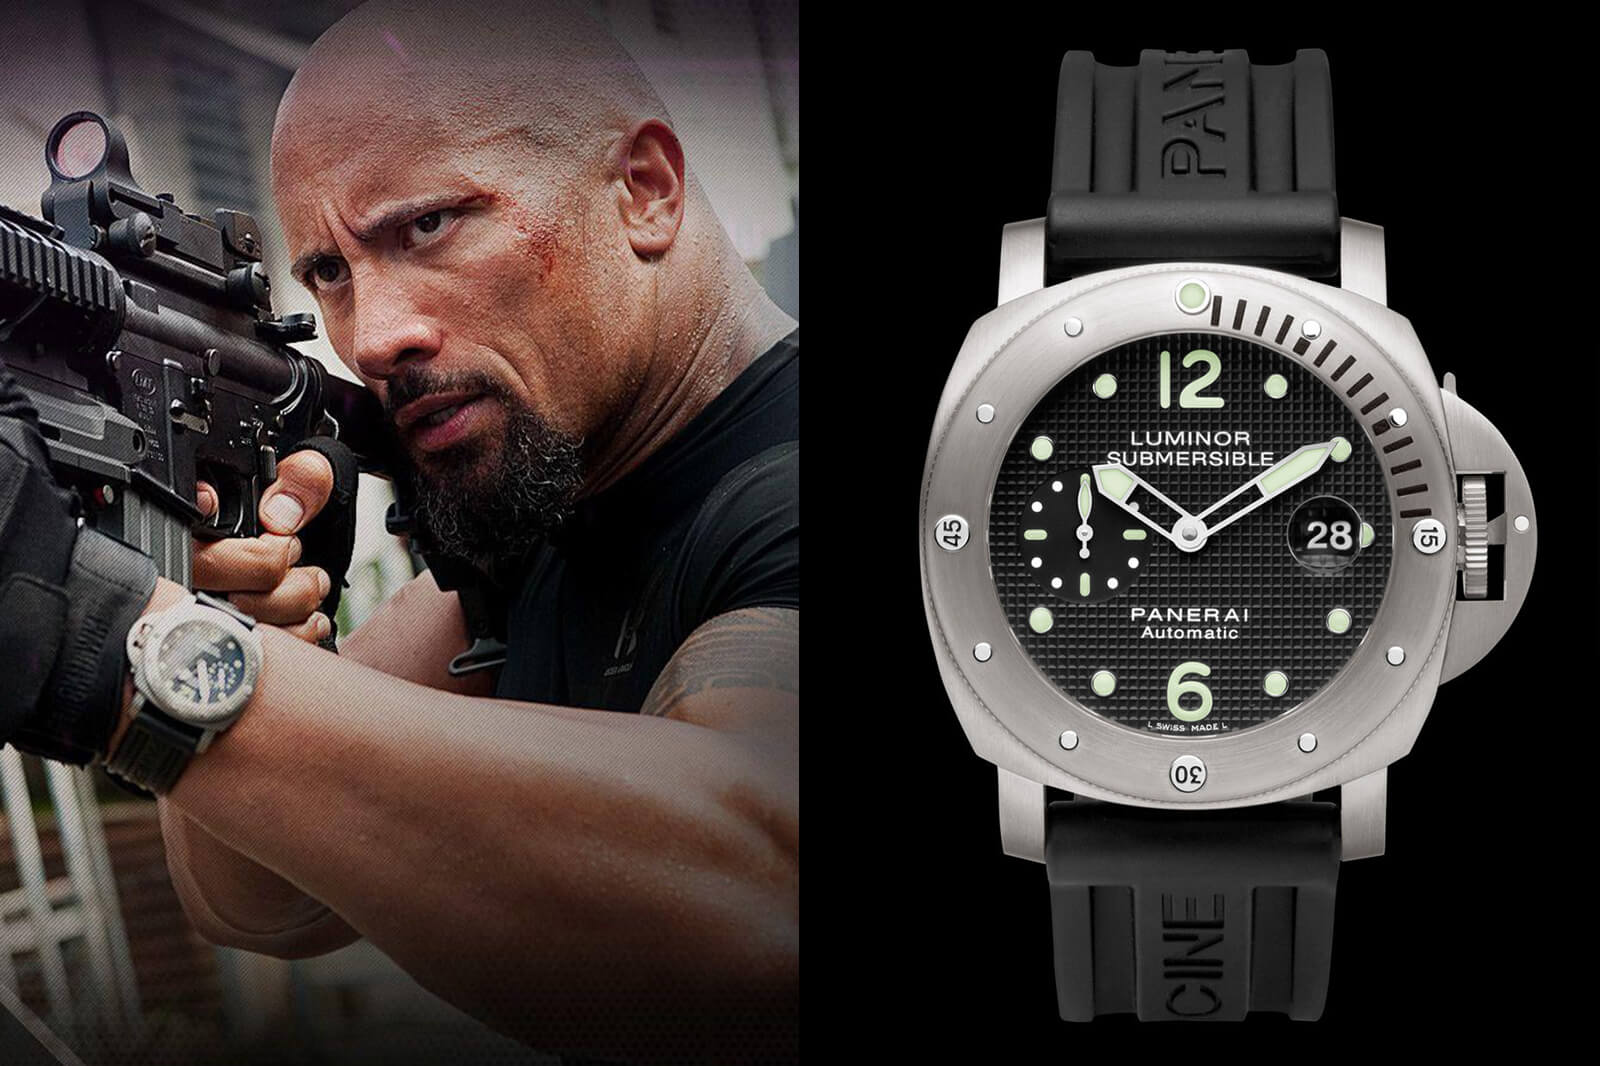 Dwayne Johnson Panerai Luminor Submersible